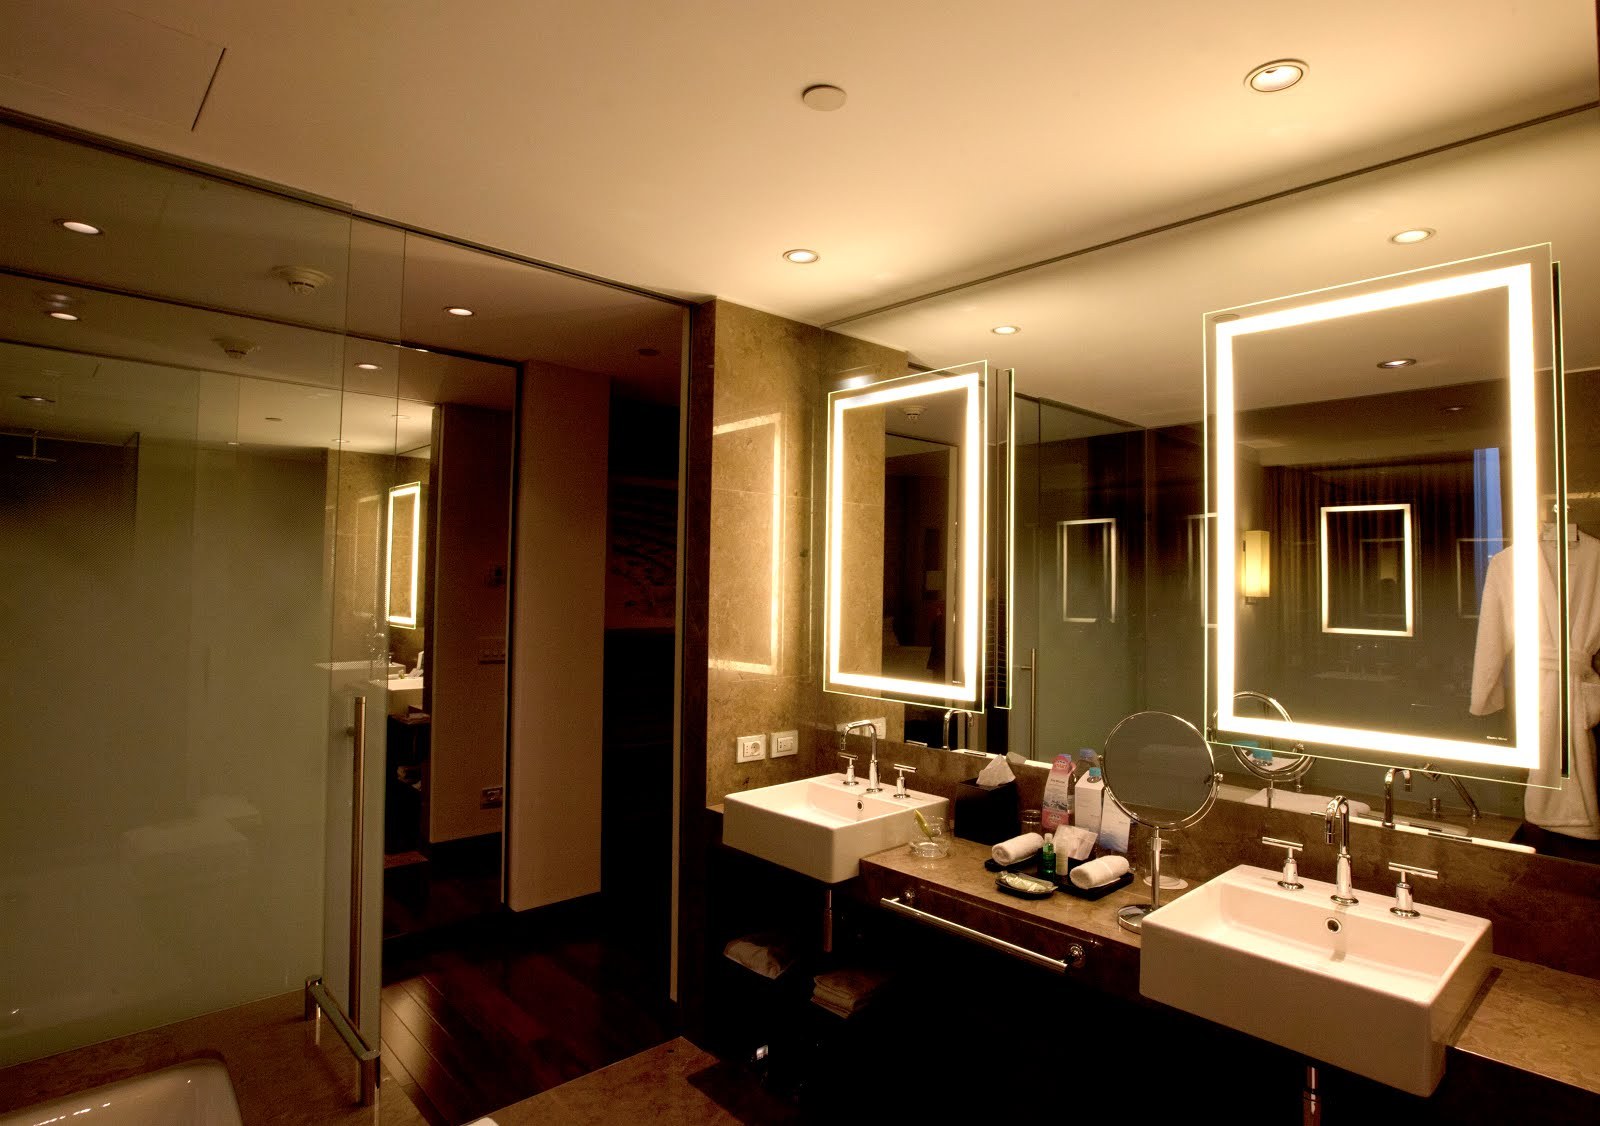 city lighting products blog : hotel lighting - industry trends